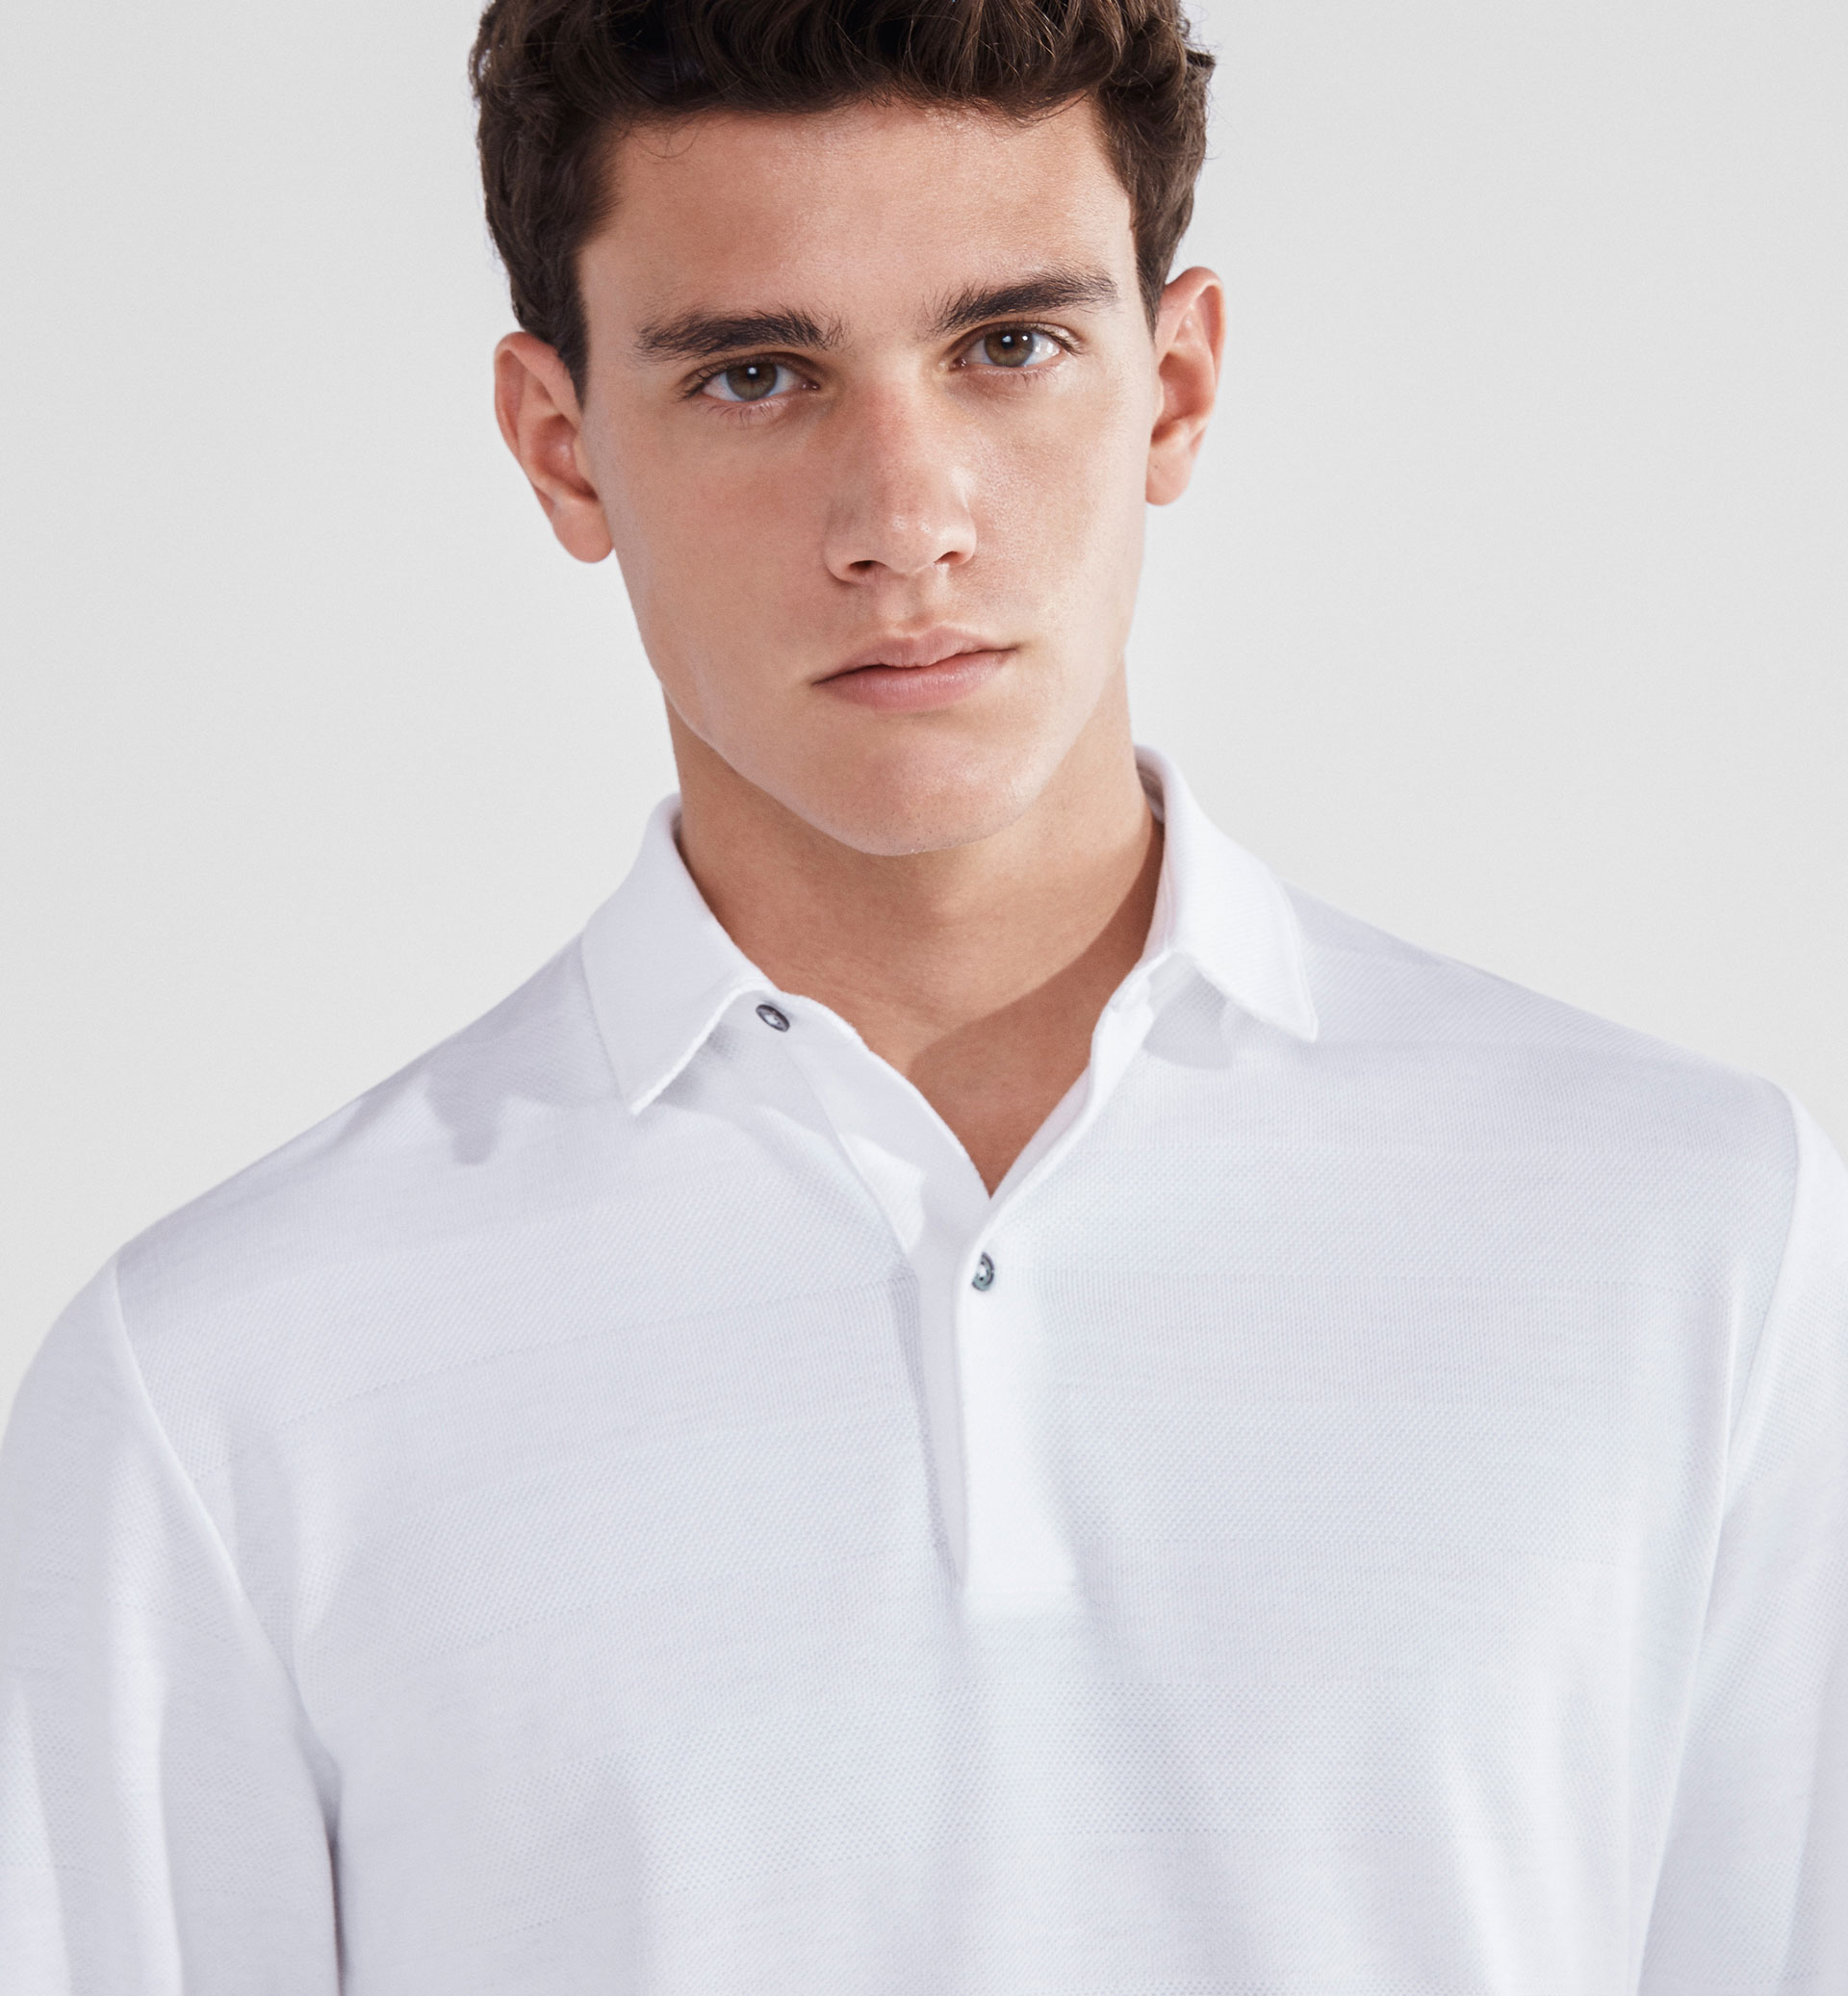 SOFT STRIPED POLO SHIRT WITH A TEXTURED DETAIL